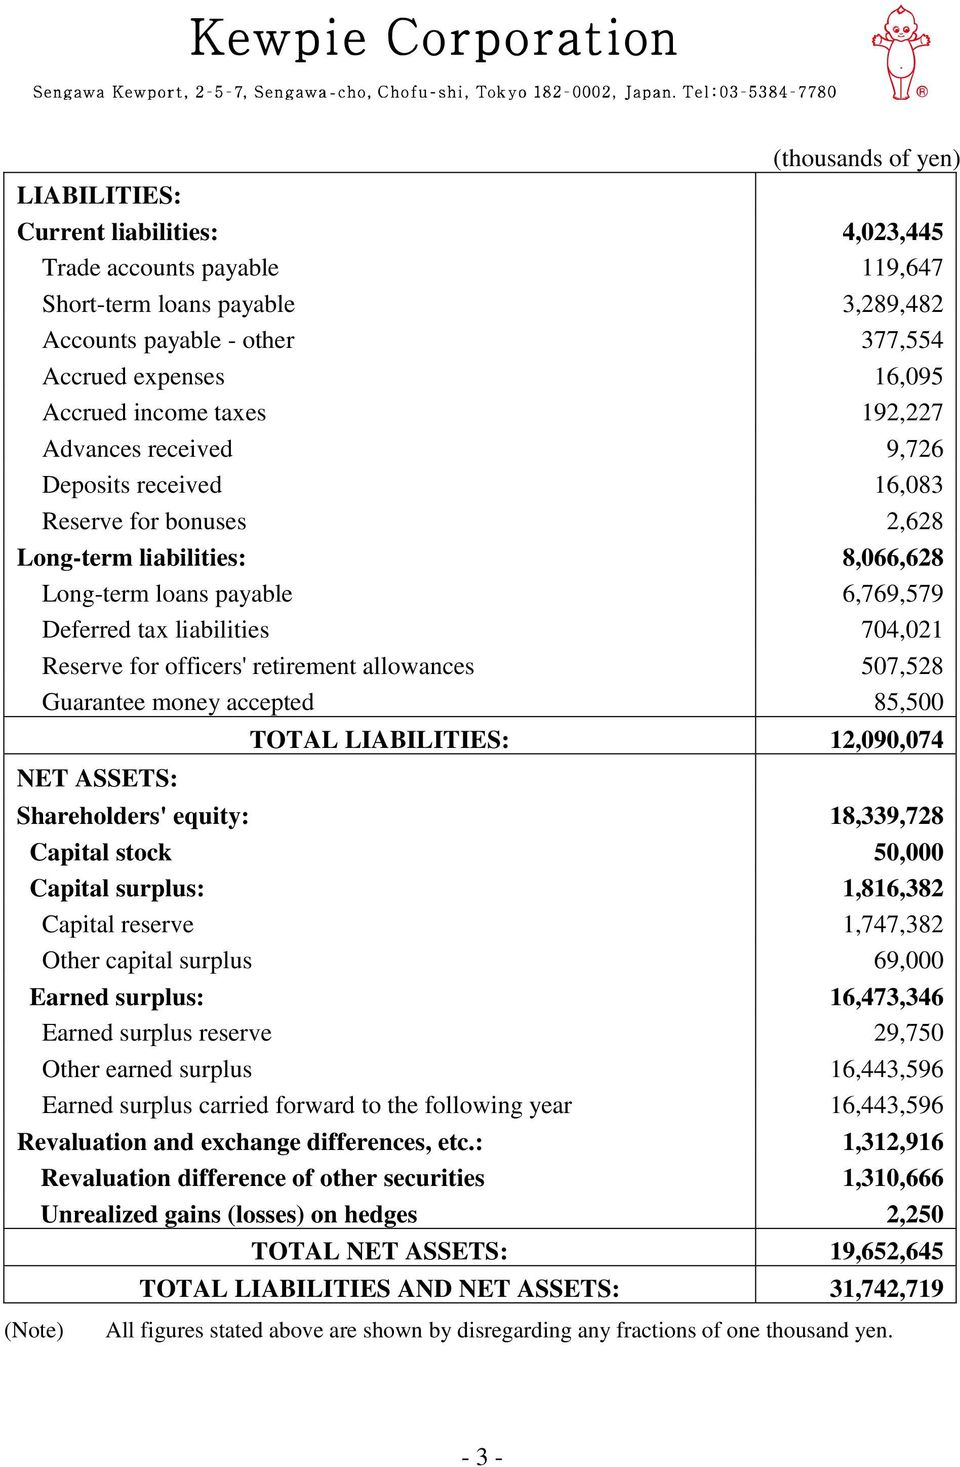 officers' retirement allowances 507,528 Guarantee money accepted 85,500 NET ASSETS: TOTAL LIABILITIES: 12,090,074 Shareholders' equity: 18,339,728 Capital stock 50,000 Capital surplus: 1,816,382